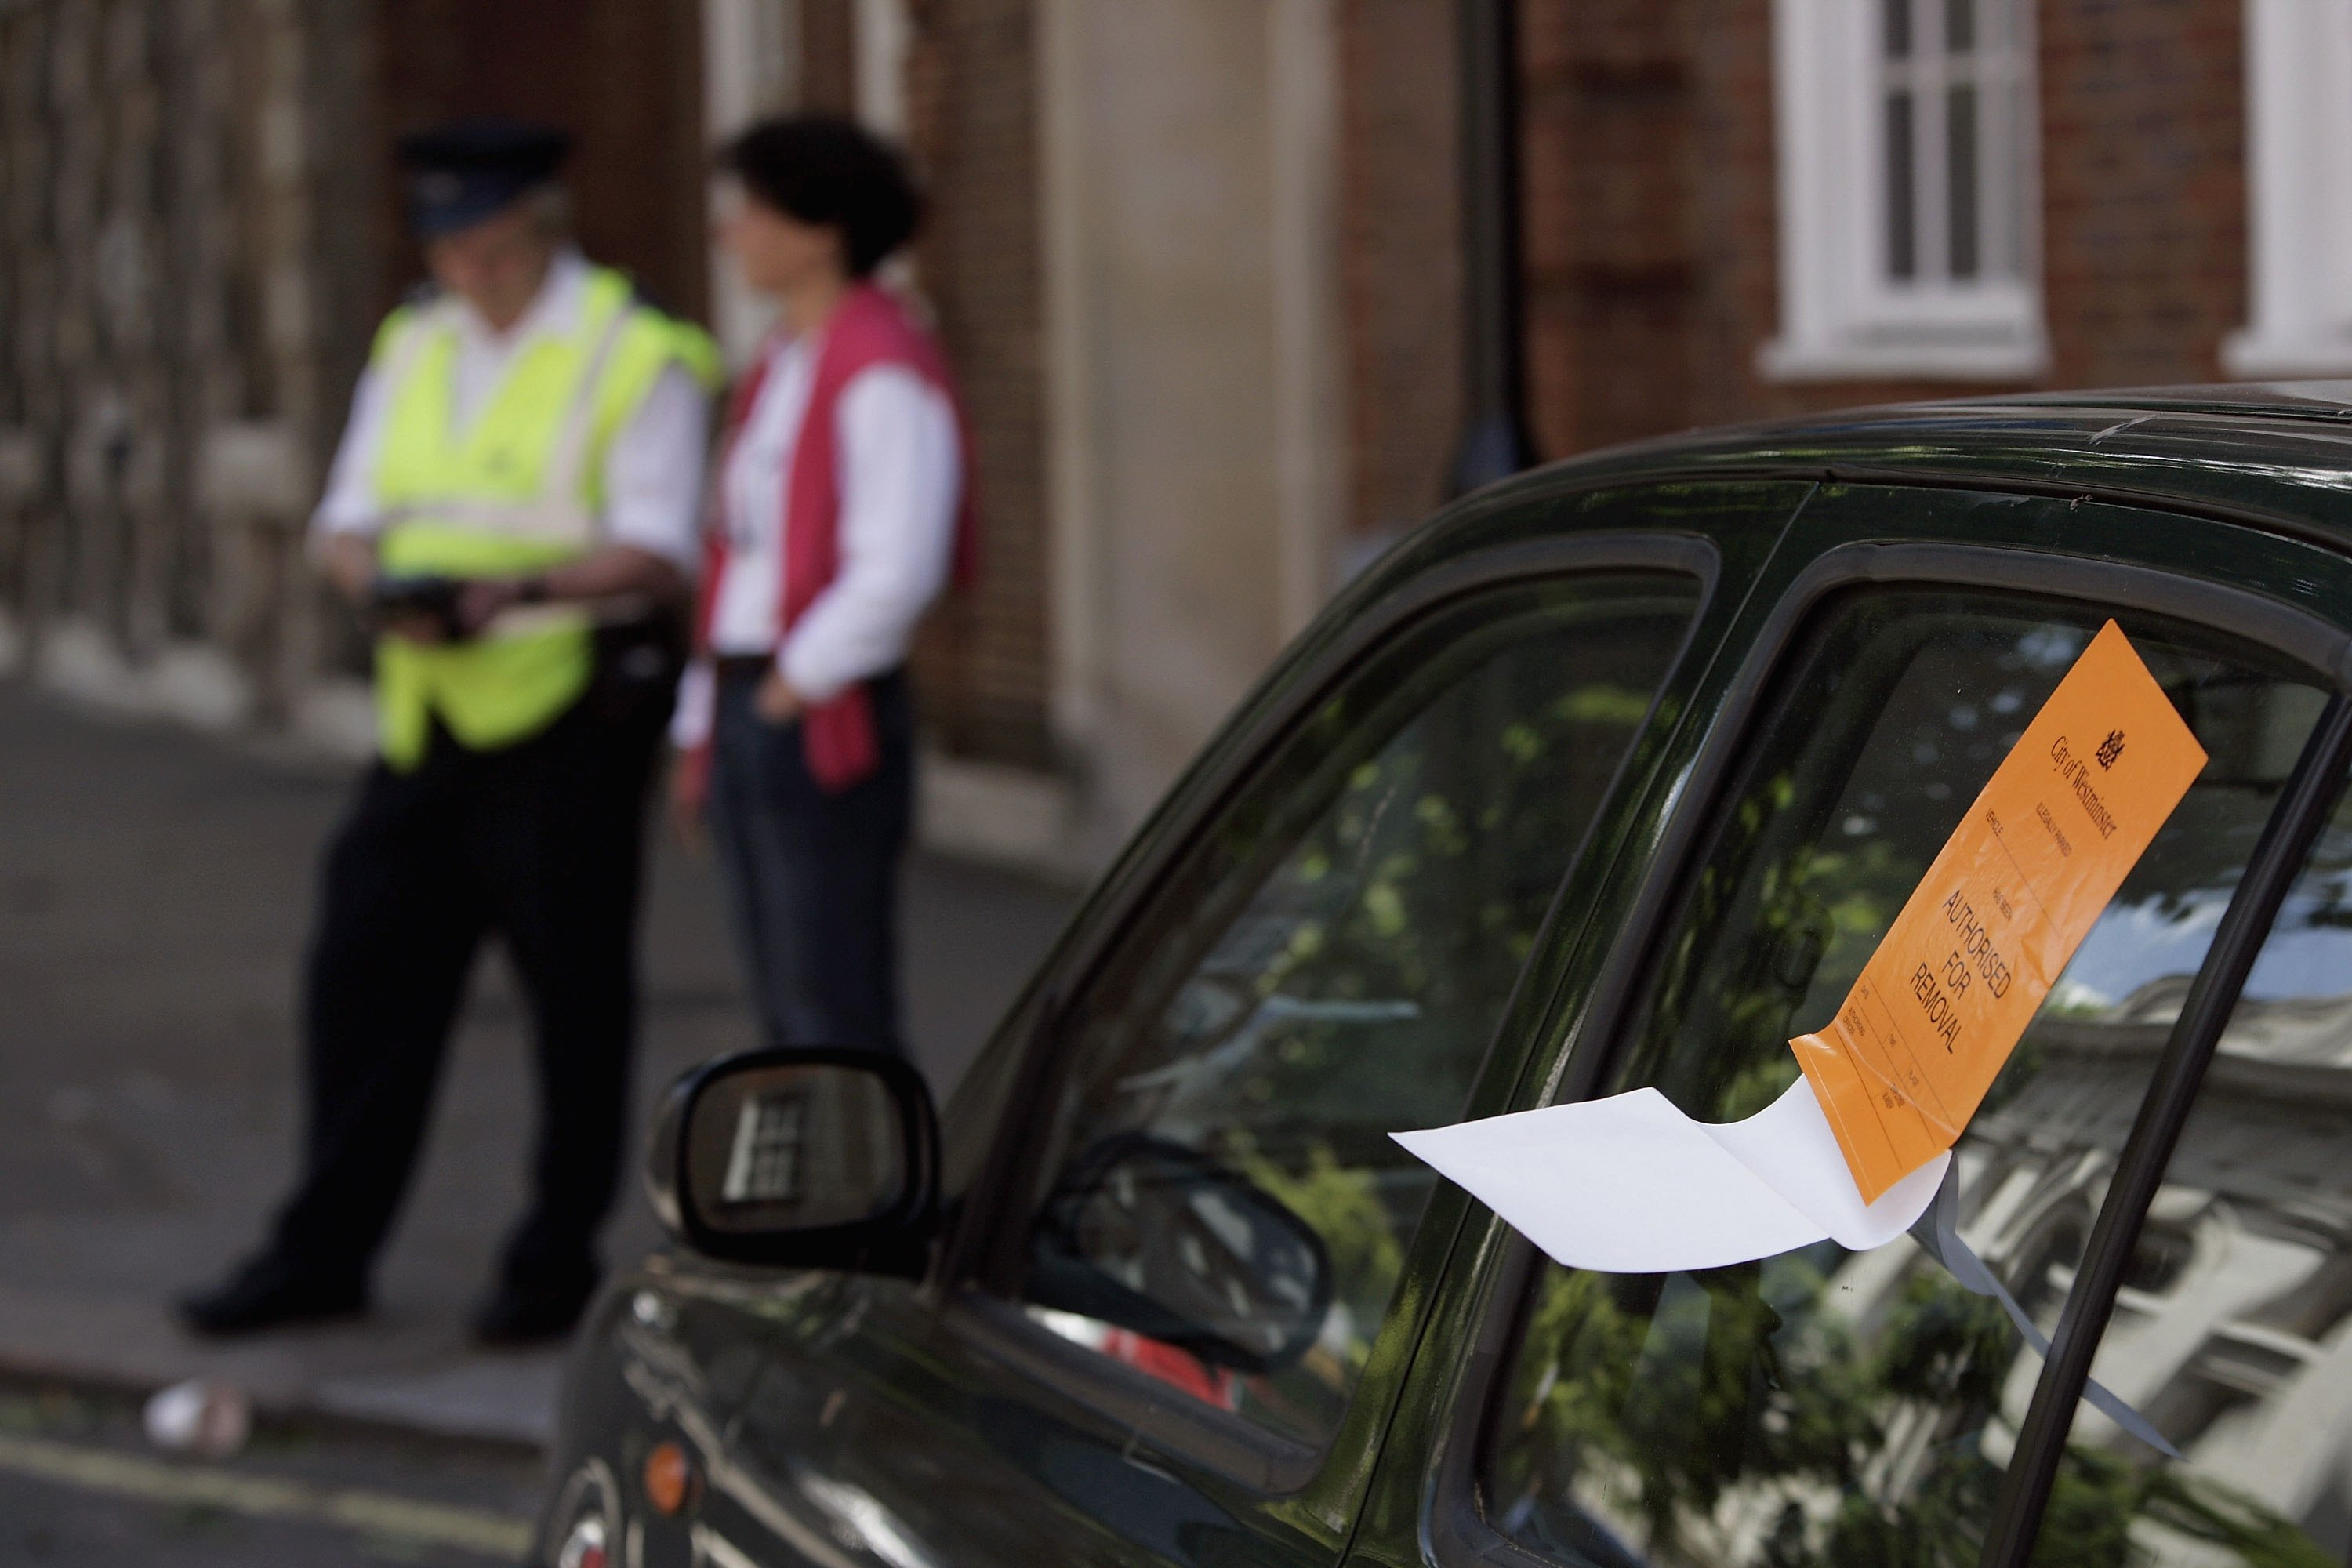 Heres A Warning For Anyone Who Parks Their Car On Pavement GettyImages 71268141